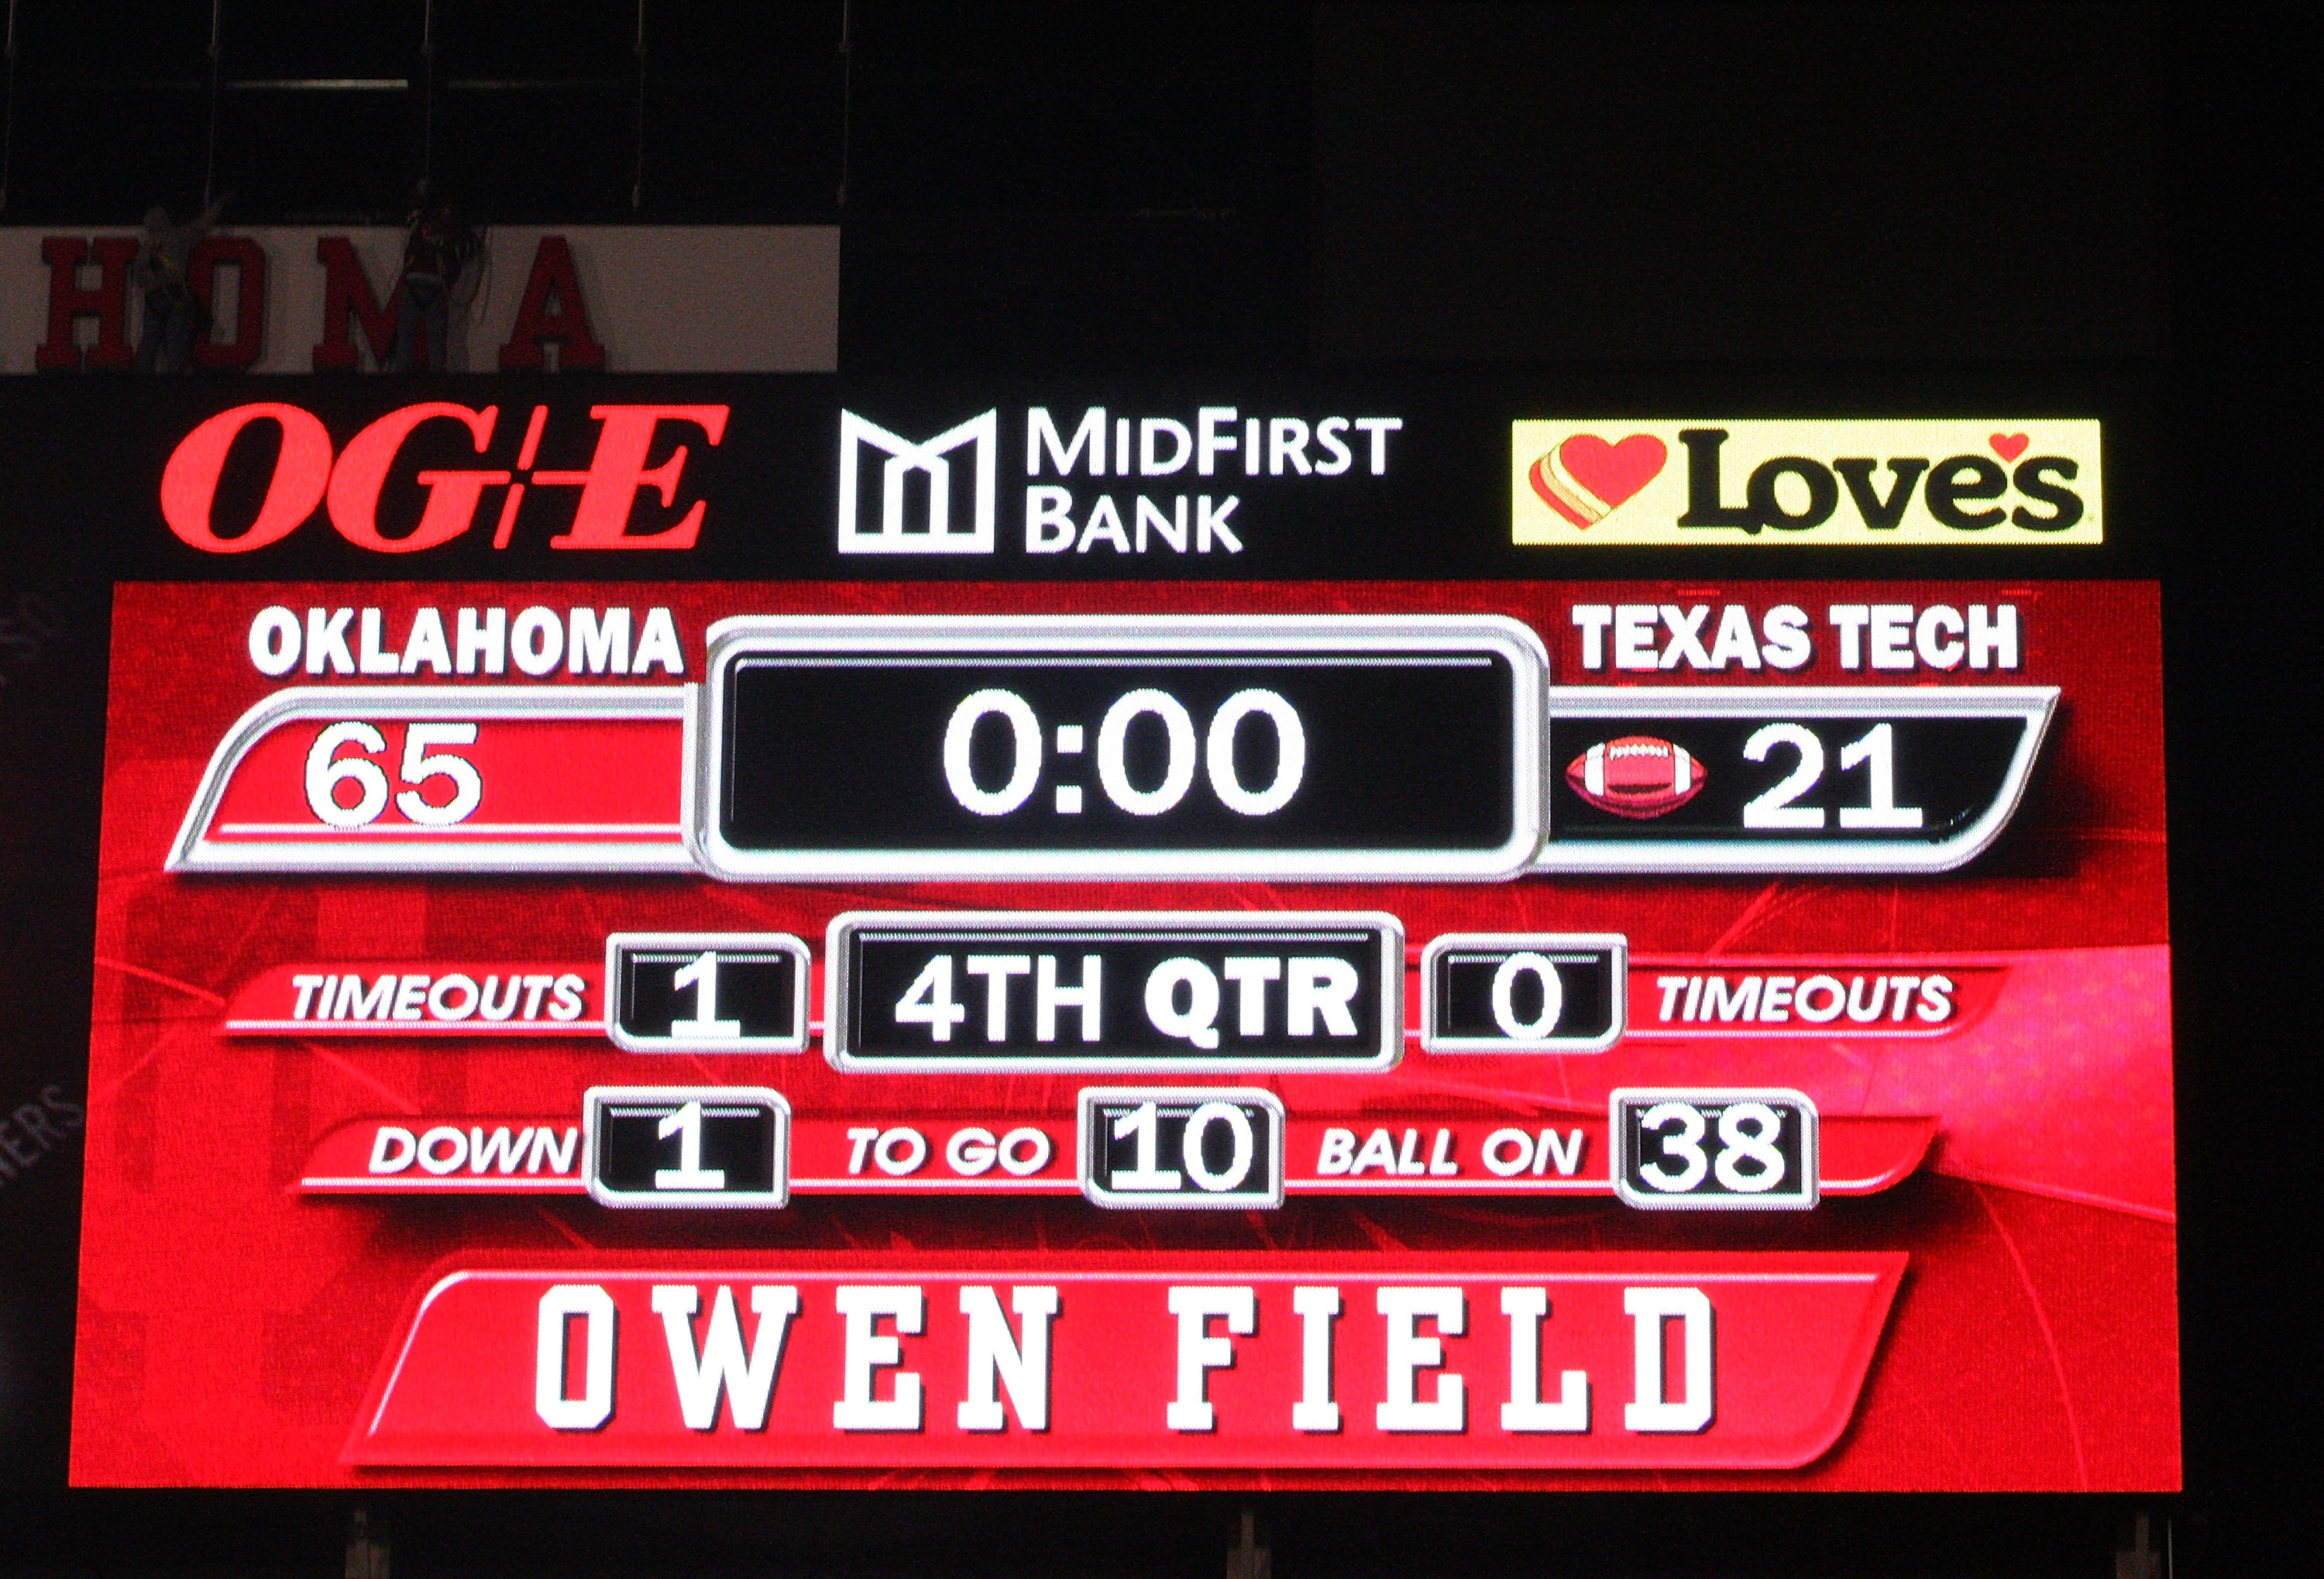 NORMAN, OK - NOVEMBER 22:  A general view of the scoreboard after the Oklahoma Sooners defeated the Texas Tech Red Raiders 65-21 at Memorial Stadium on November 22, 2008 in Norman, Oklahoma.  (Photo by Ronald Martinez/Getty Images)